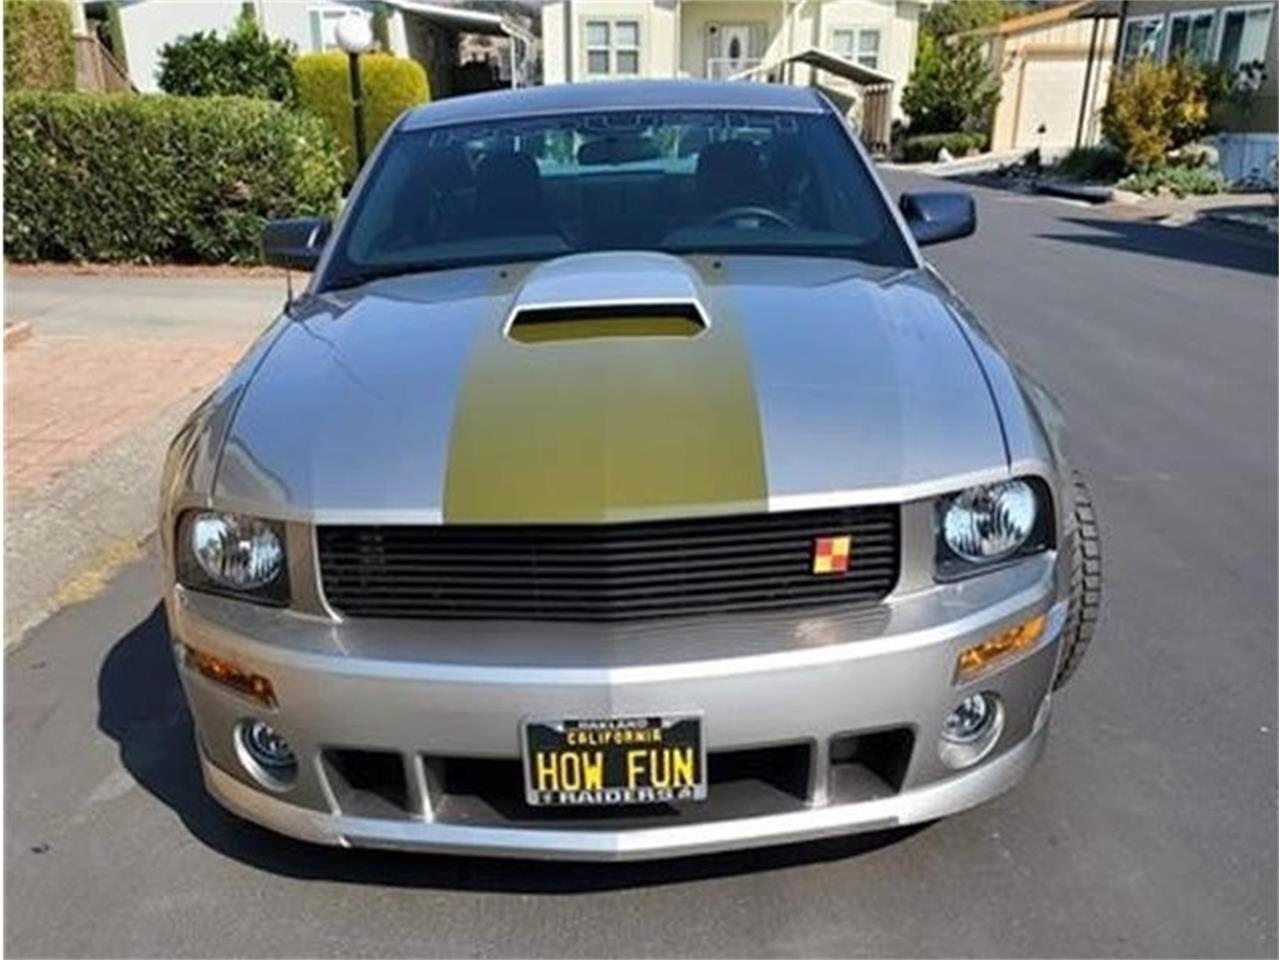 2008 Ford Mustang (Roush) (CC-1357840) for sale in YOUNTVILLE, California